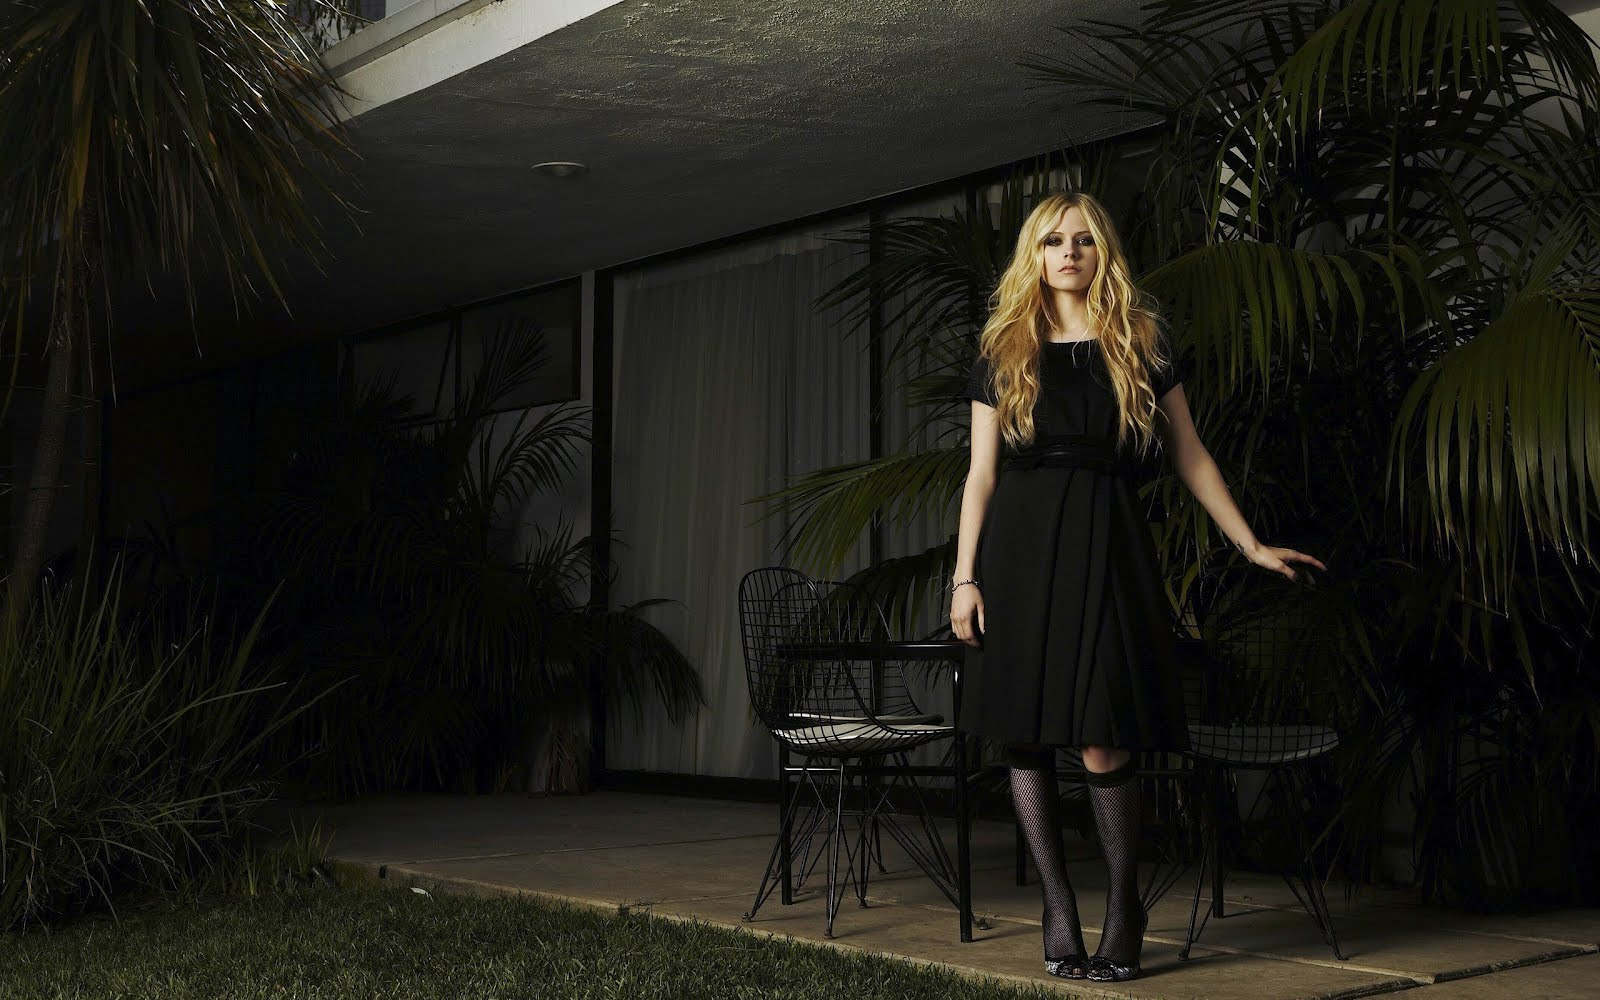 http://4.bp.blogspot.com/-yMmUuTELArs/UFG_ELoULUI/AAAAAAAABc0/Ni9Vyew5Fi4/s1600/Women-Avril-Lavigne-Trees-Socks-Celebrity-High-Heels-Chairs-Fishnet-Lingerie-2560x1600px-Hd-Wallpaper-708214.jpg